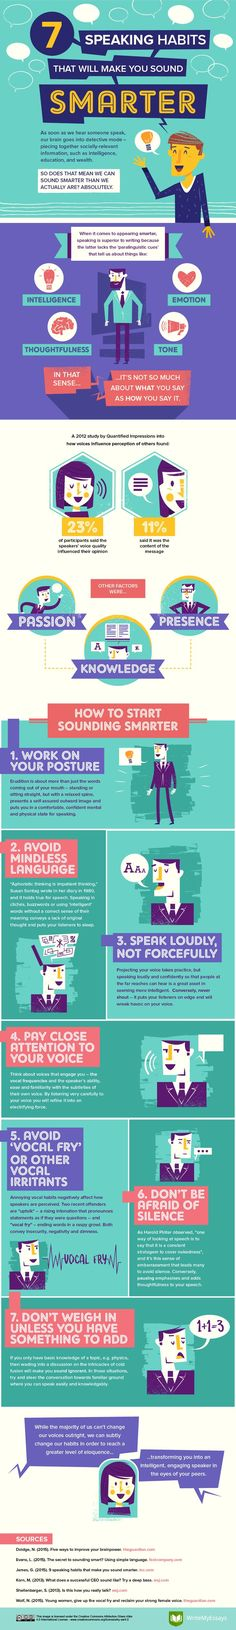 7 Speaking Habits That Will Make You Sound Smarter Infographic - http://elearninginfographics.com/7-speaking-habits-that-will-make-you-sound-smarter-infographic/